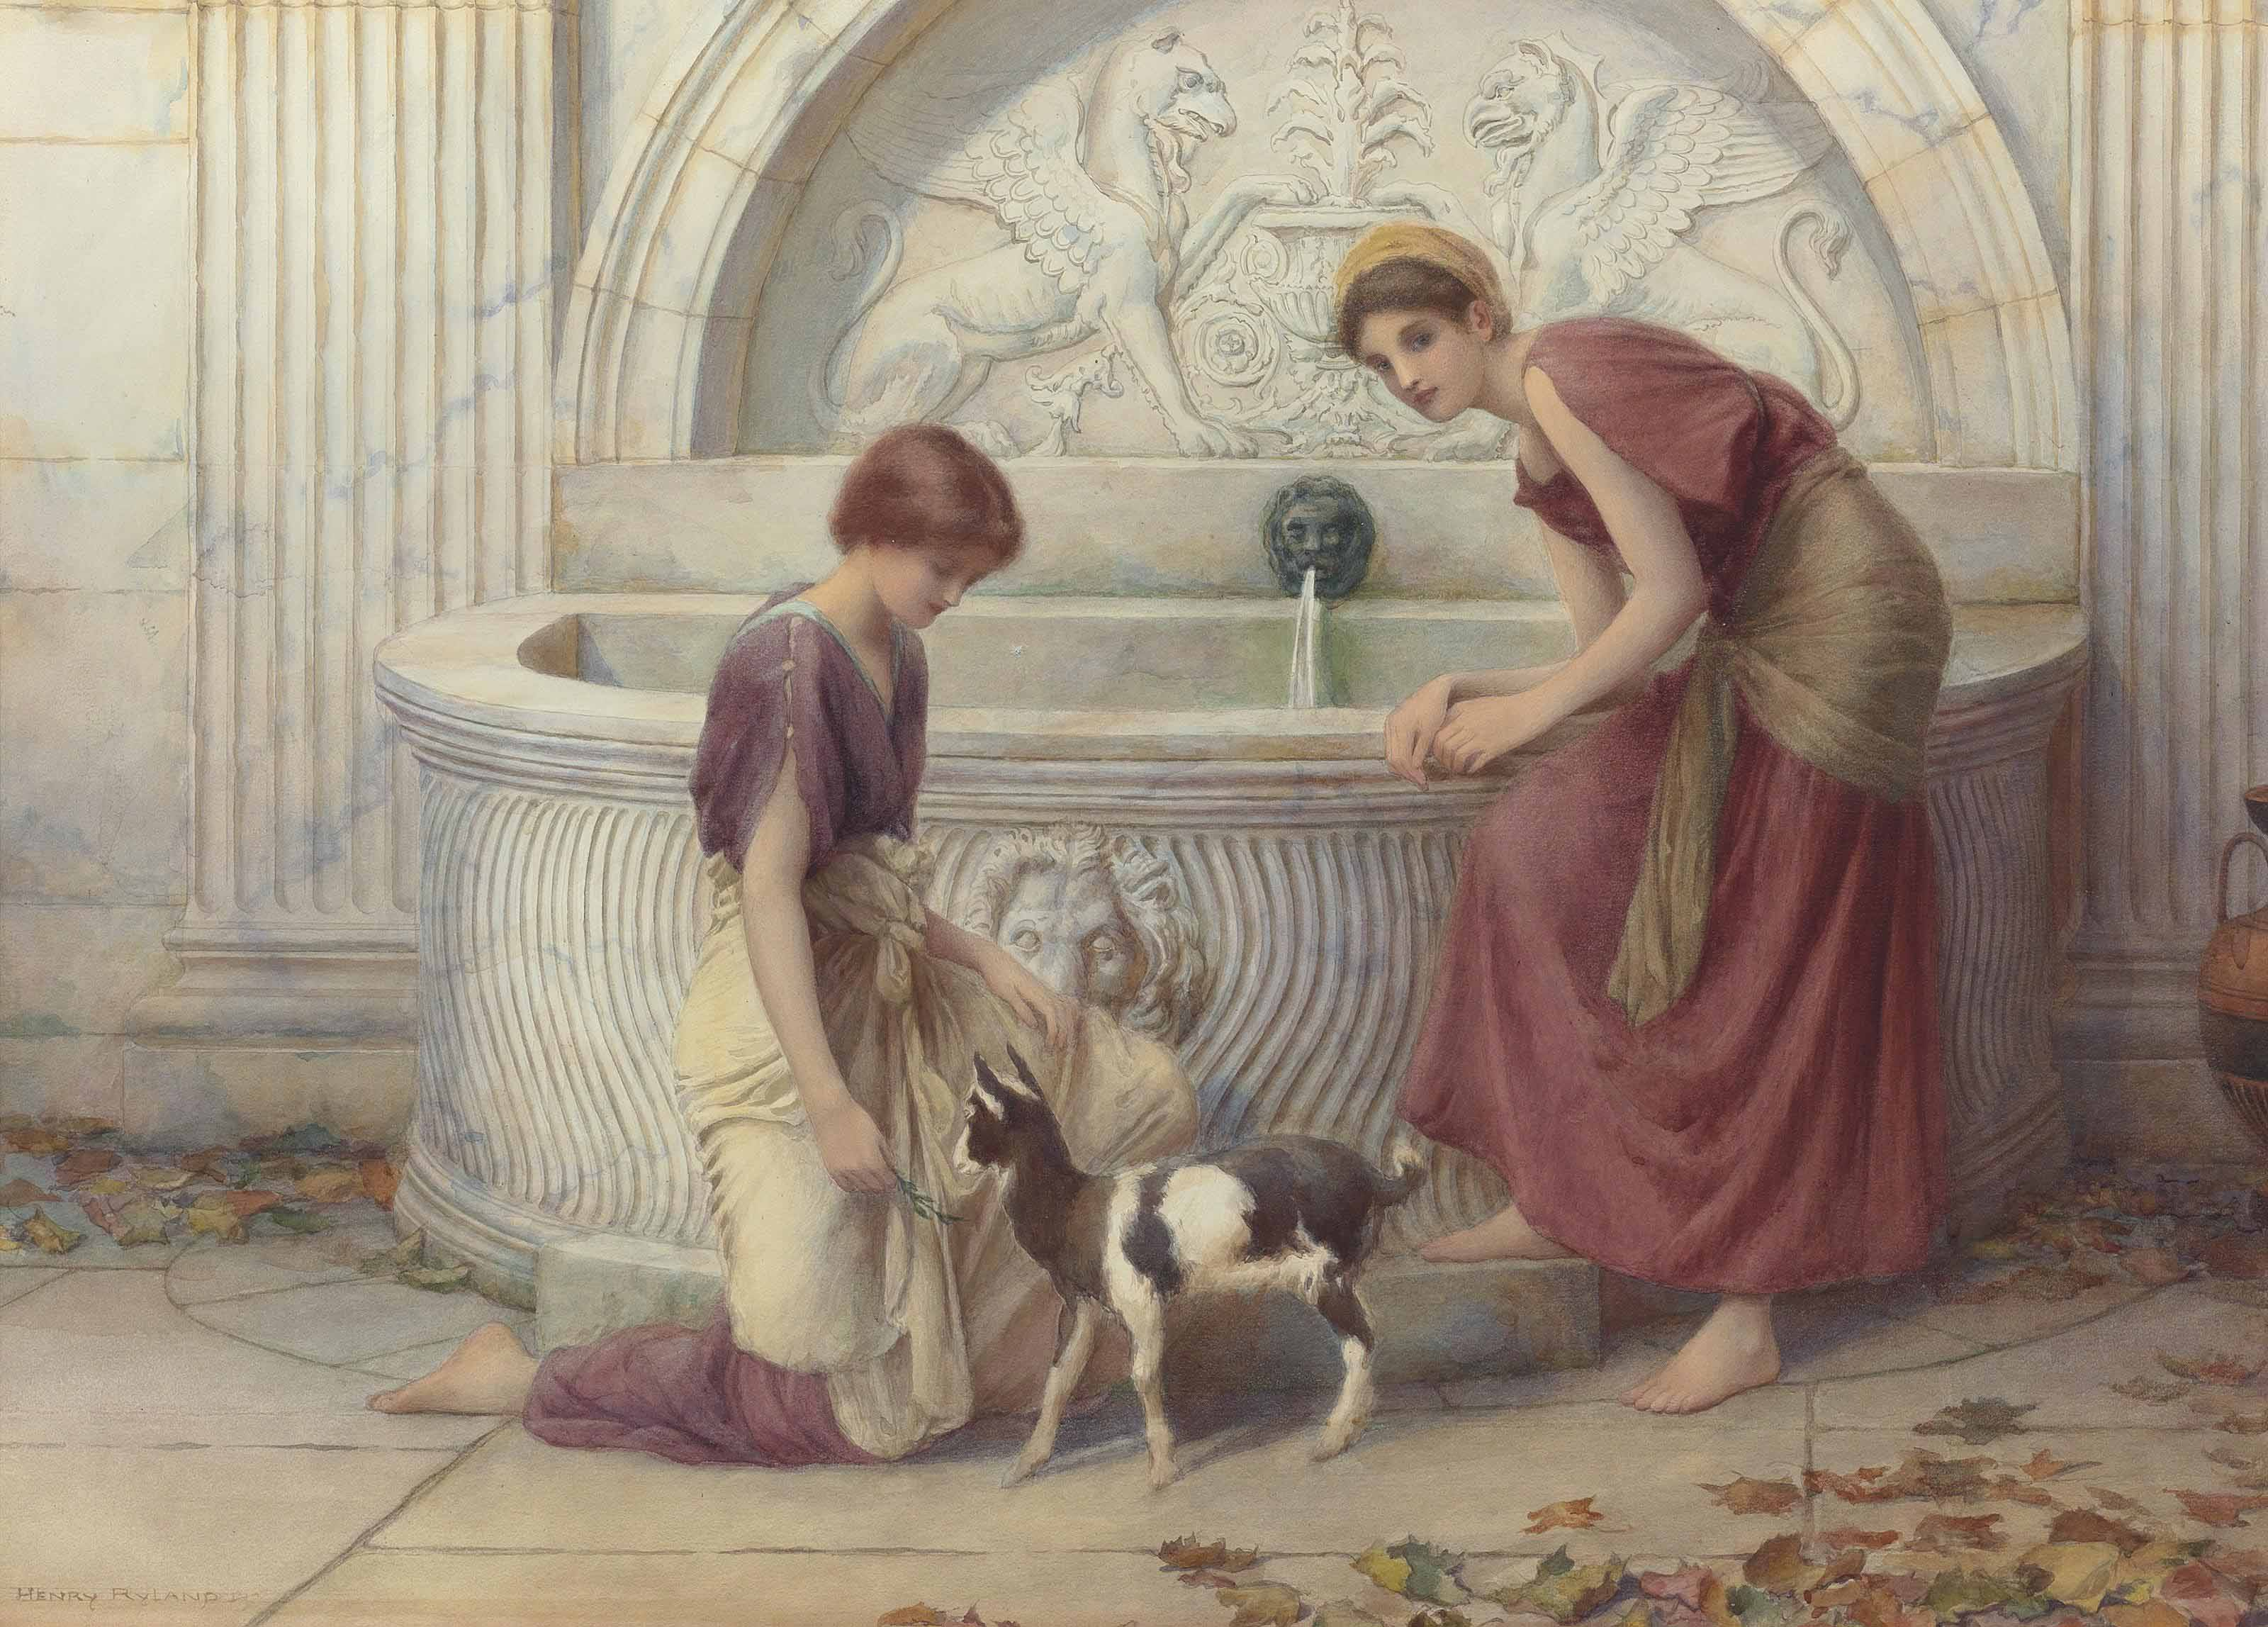 At the fountain, Autumn